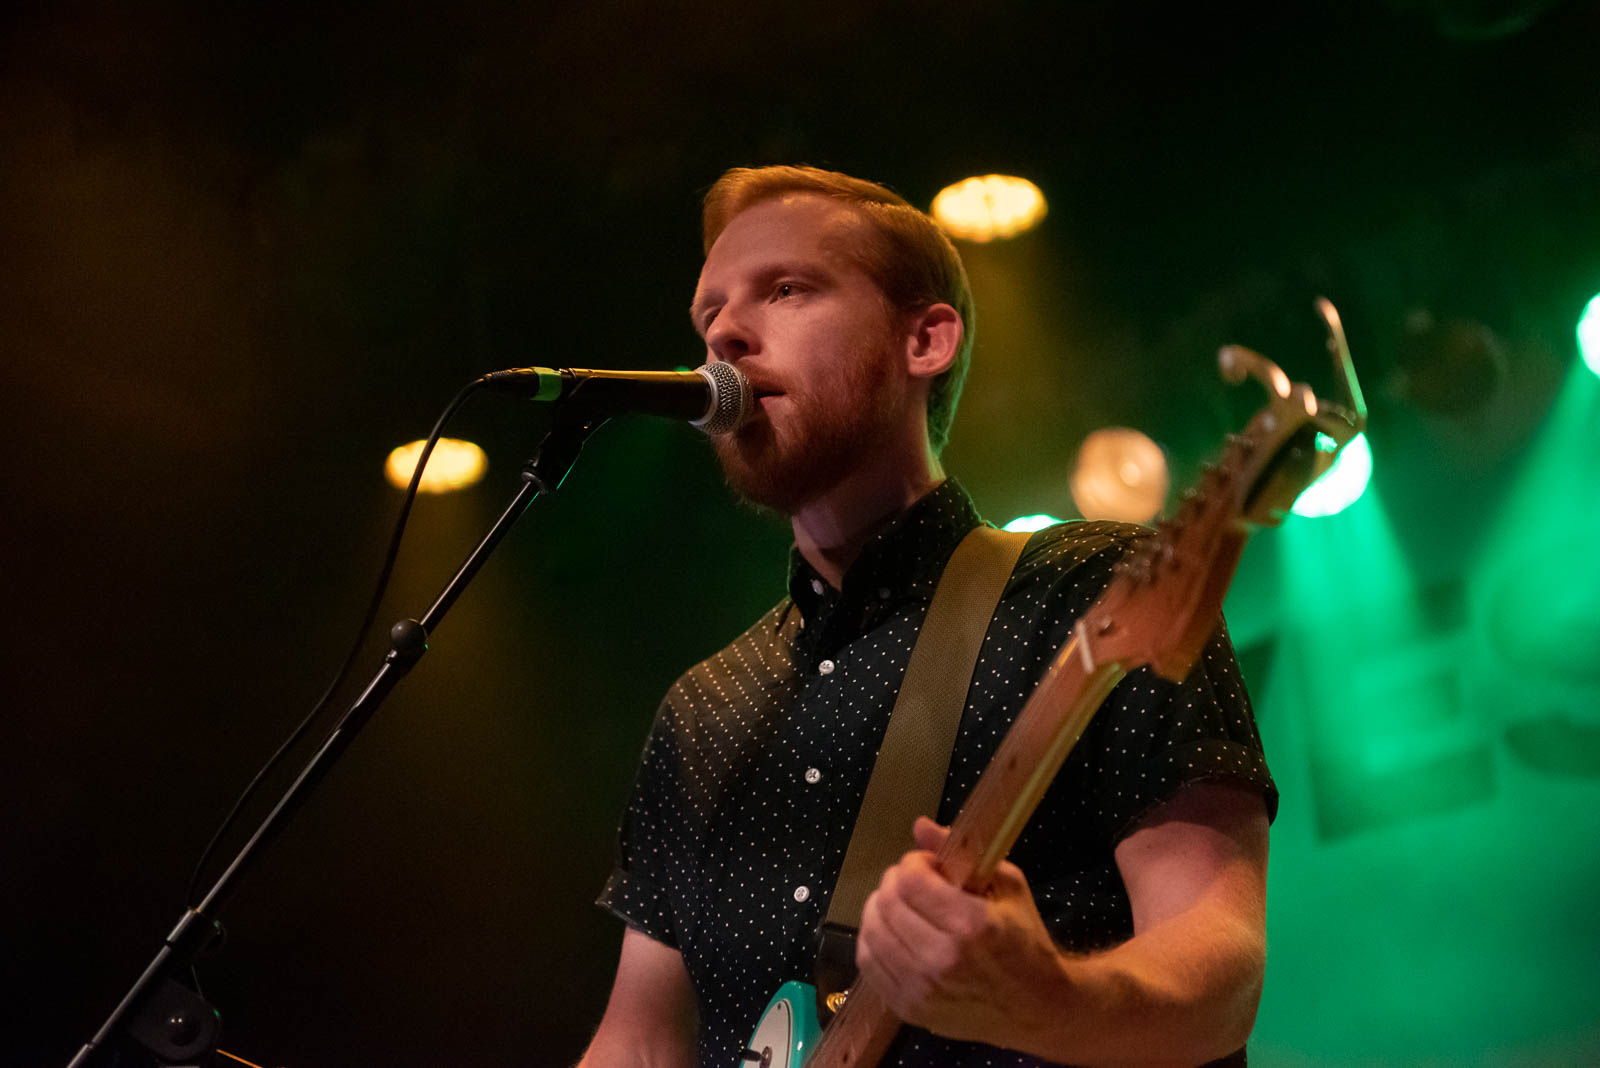 Kevin Devine performs at Warsaw on Wednesday, November 14, 2018